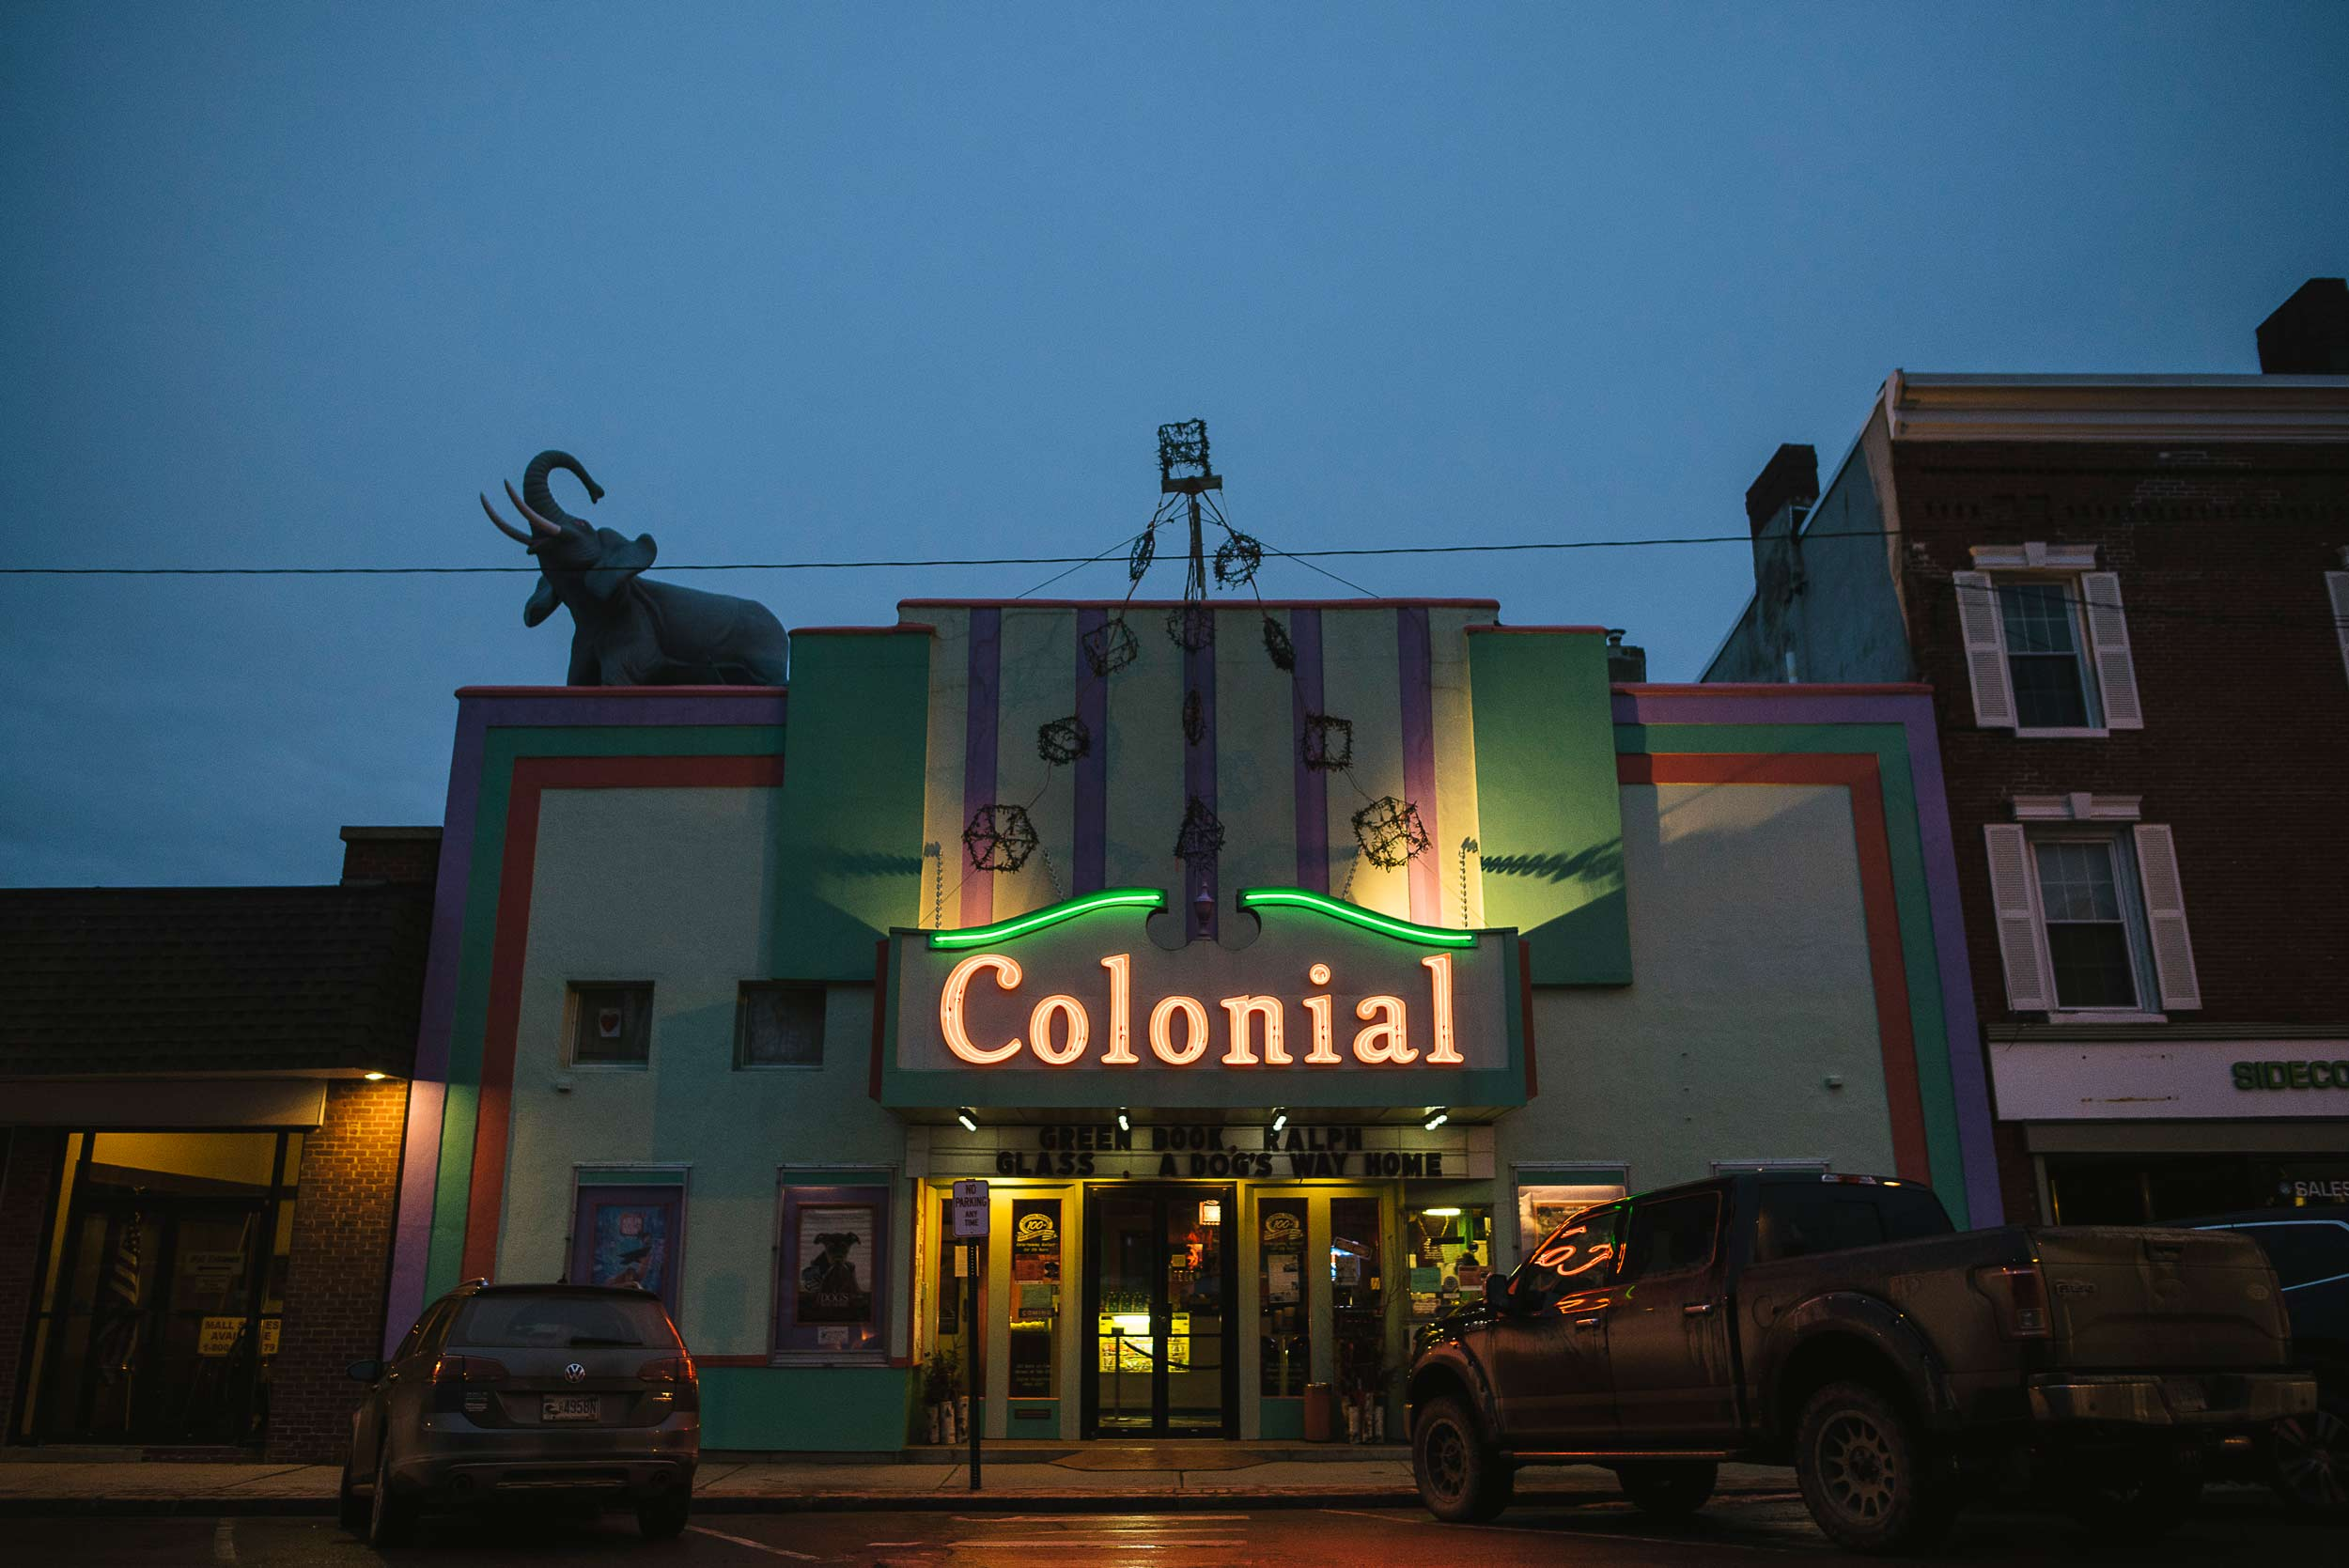 The show starts on the sidewalk with the Colonial Theatre's neon marquee and Hawthorne the elephant trumpeting above High Street.